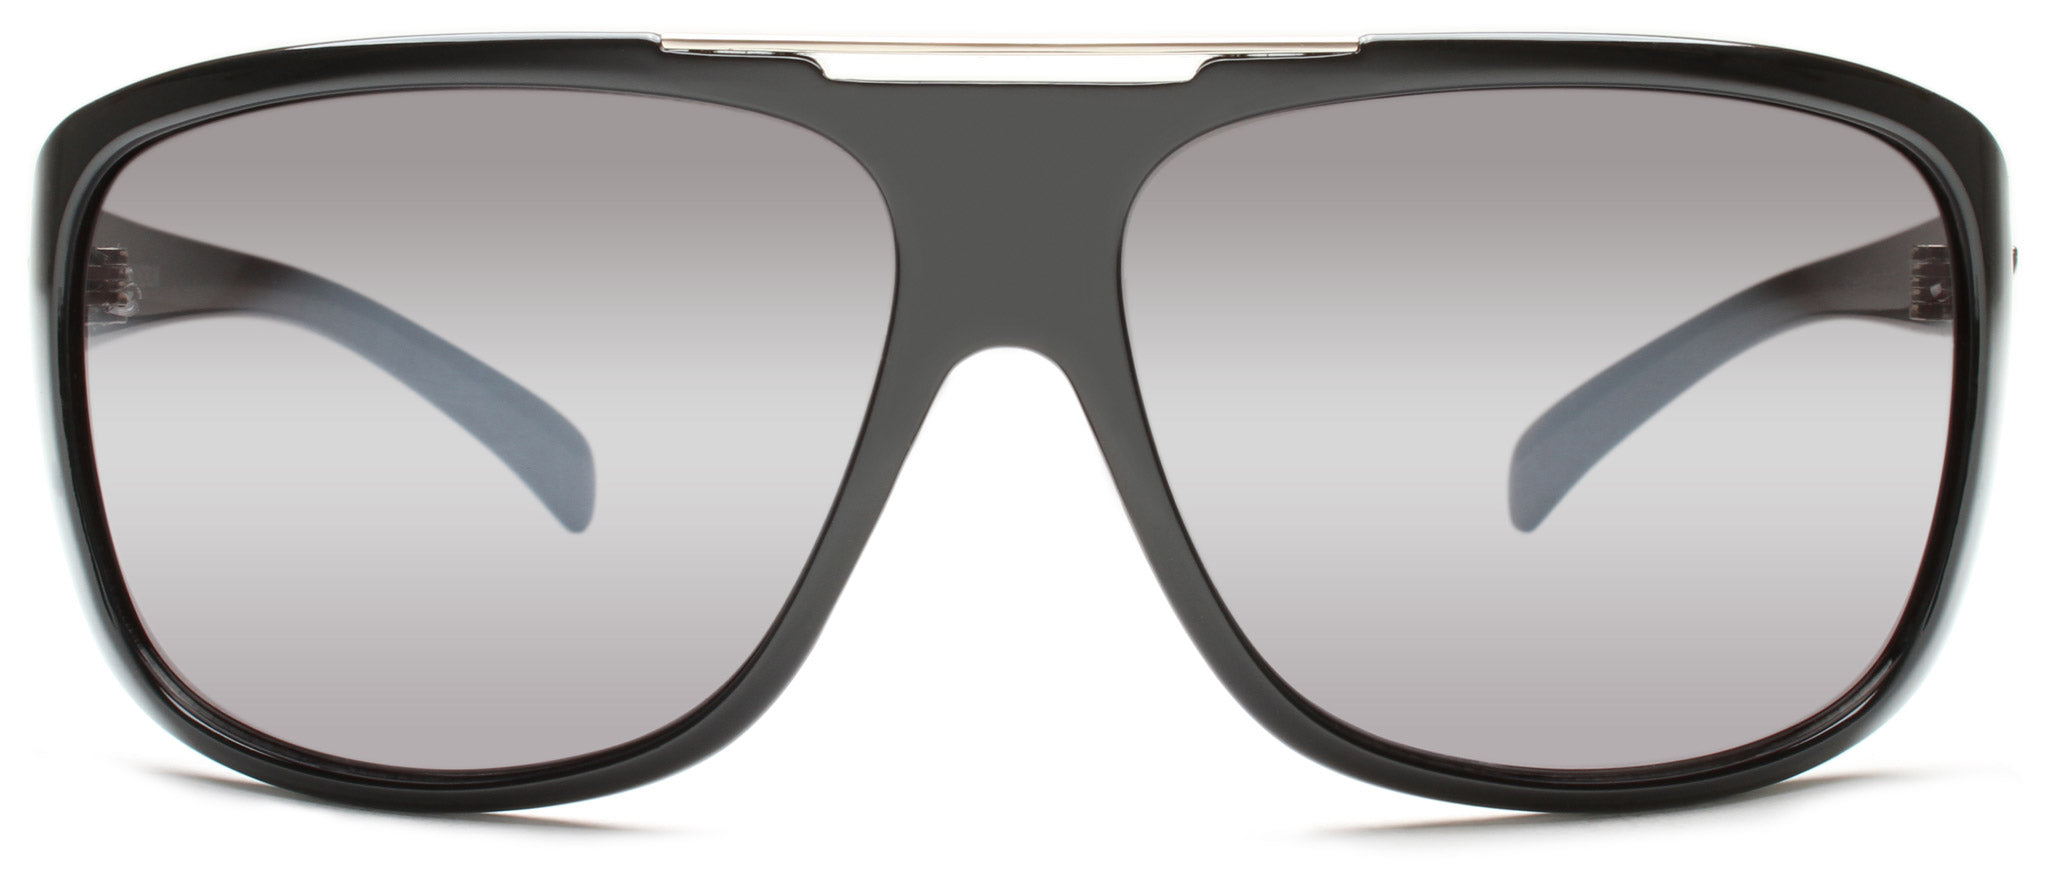 306e39869eed3 Kreed - Conundrum – Fortress Eyewear